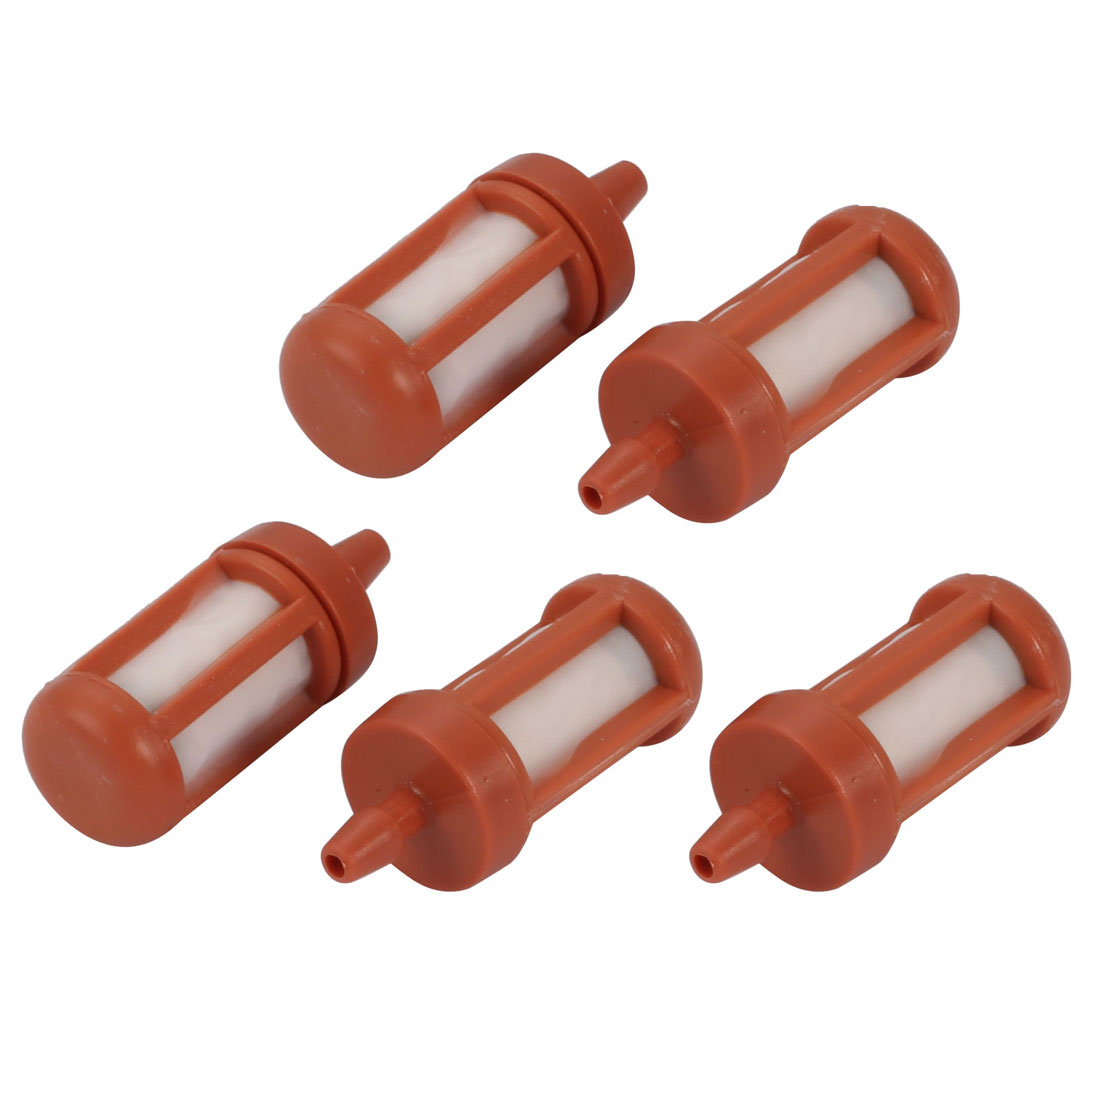 5Pcs Fuel Filter Fit For 2012B Weedeater Trimmer Edger Chainsaw Blower